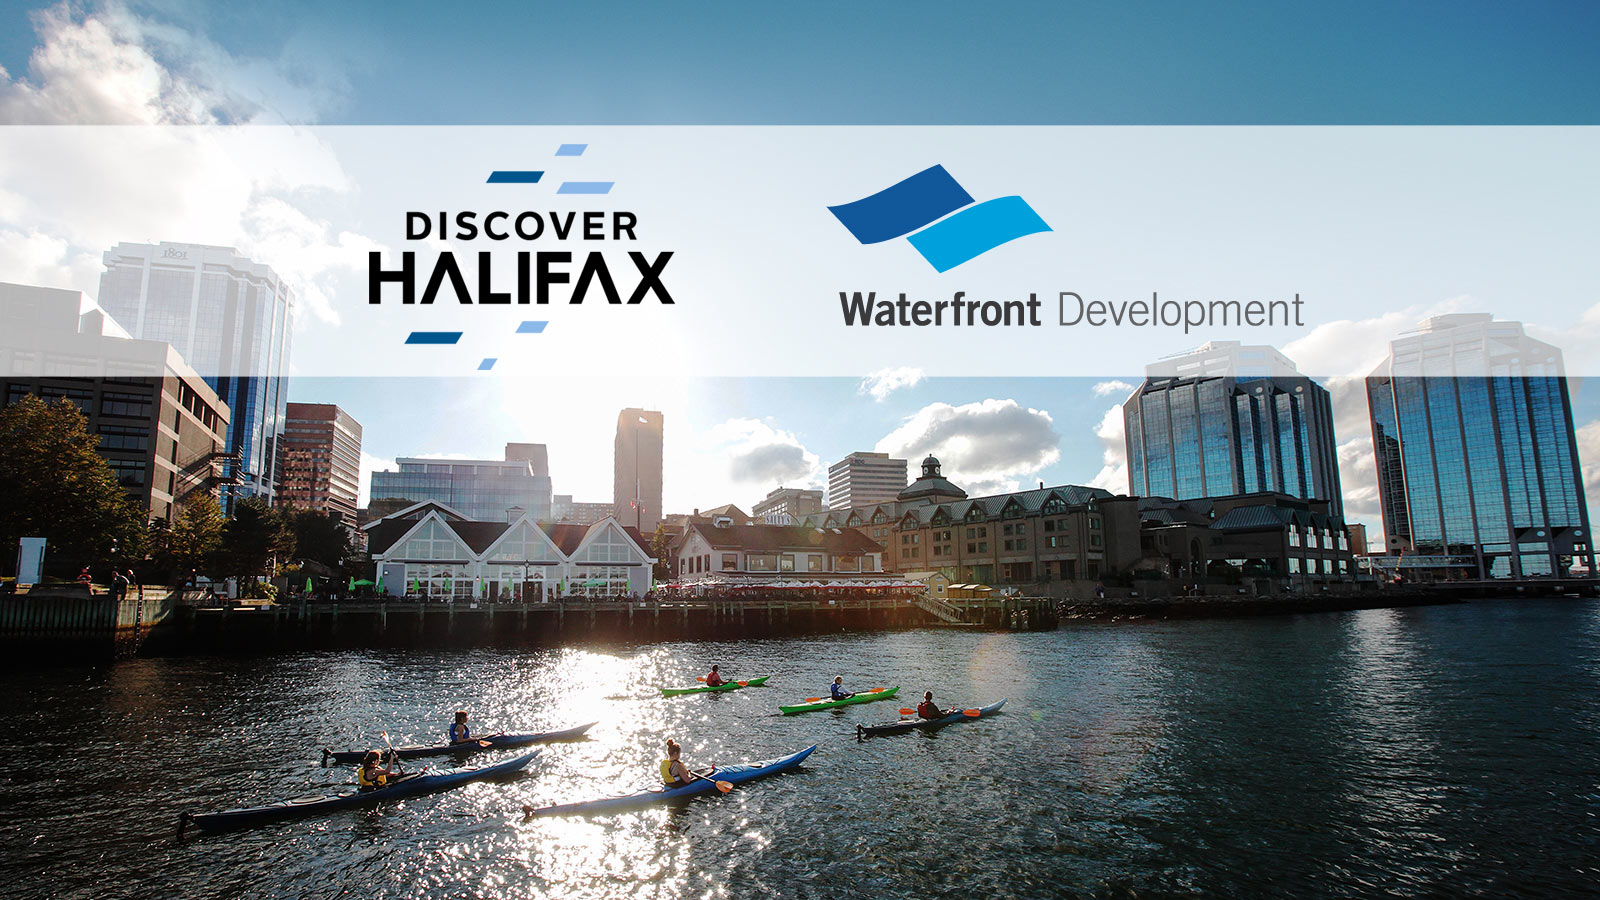 Halifax Waterfront and Discover Halifaxayaking-Hfx-Harbour_Logos